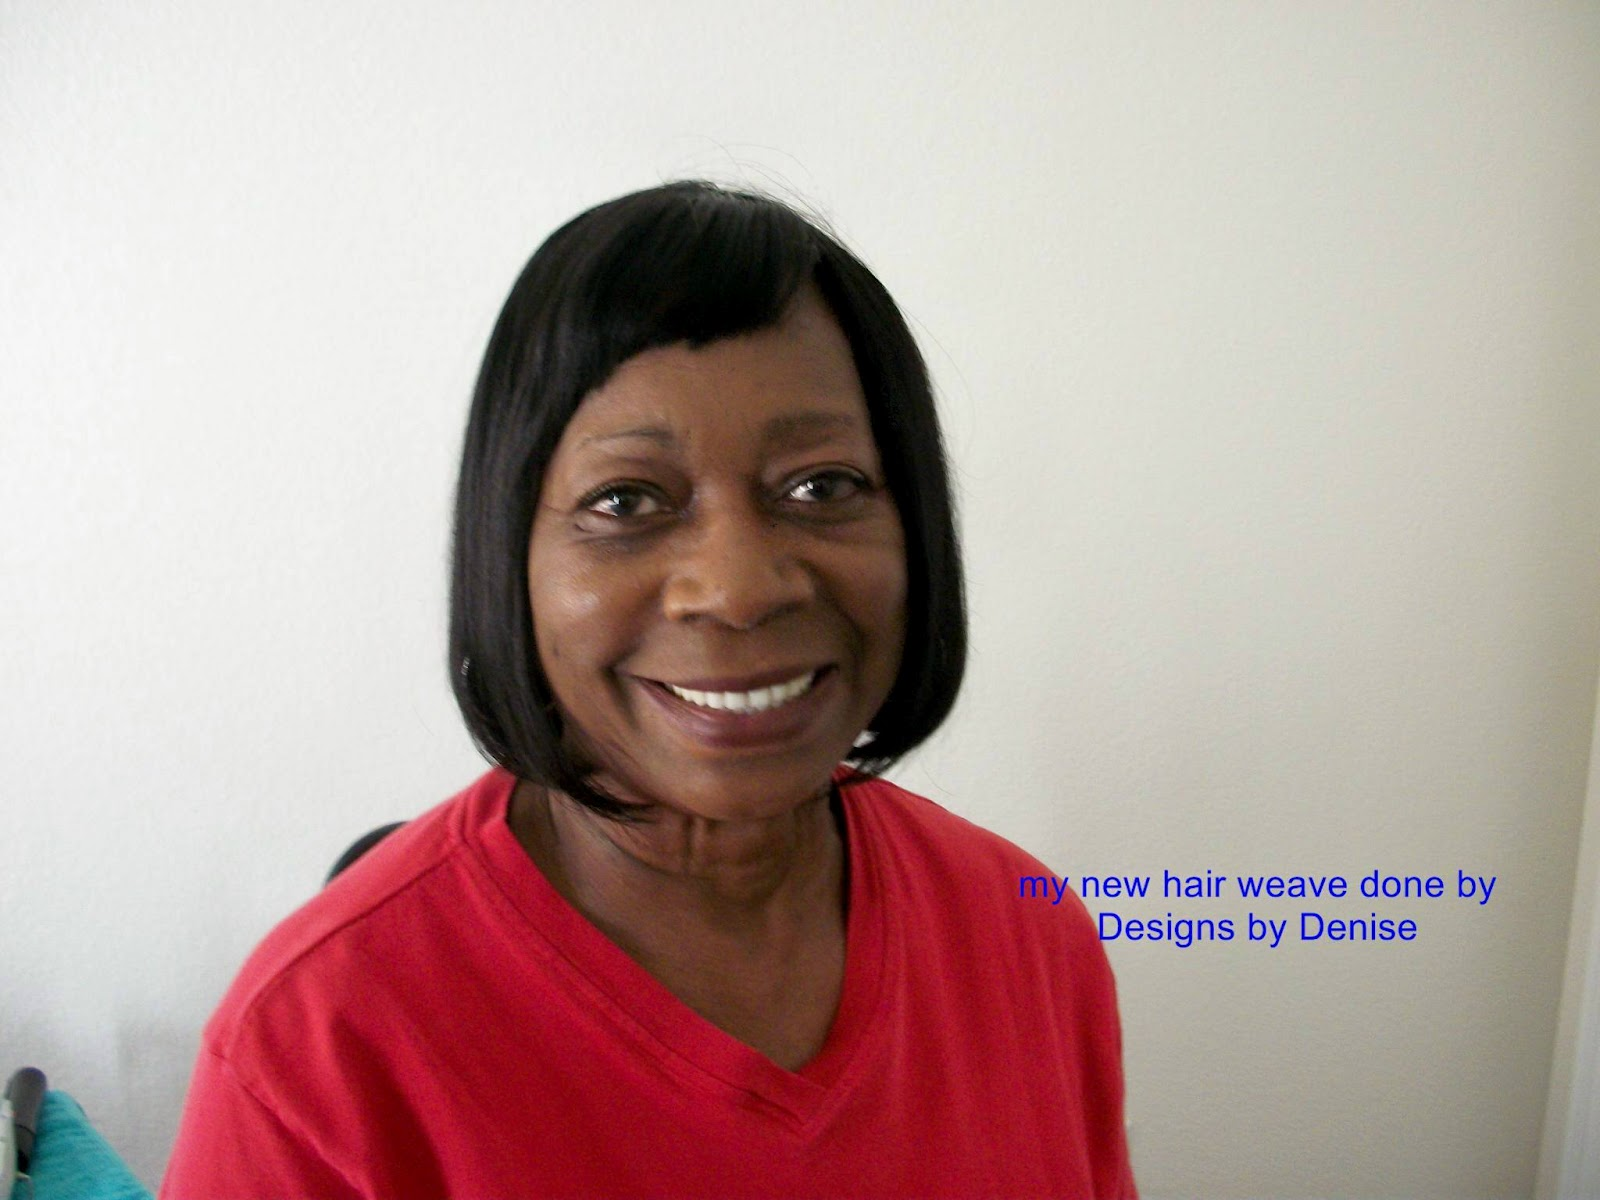 Grand Opening Hair Designs By Denise Hair Weave By Hair Designs By